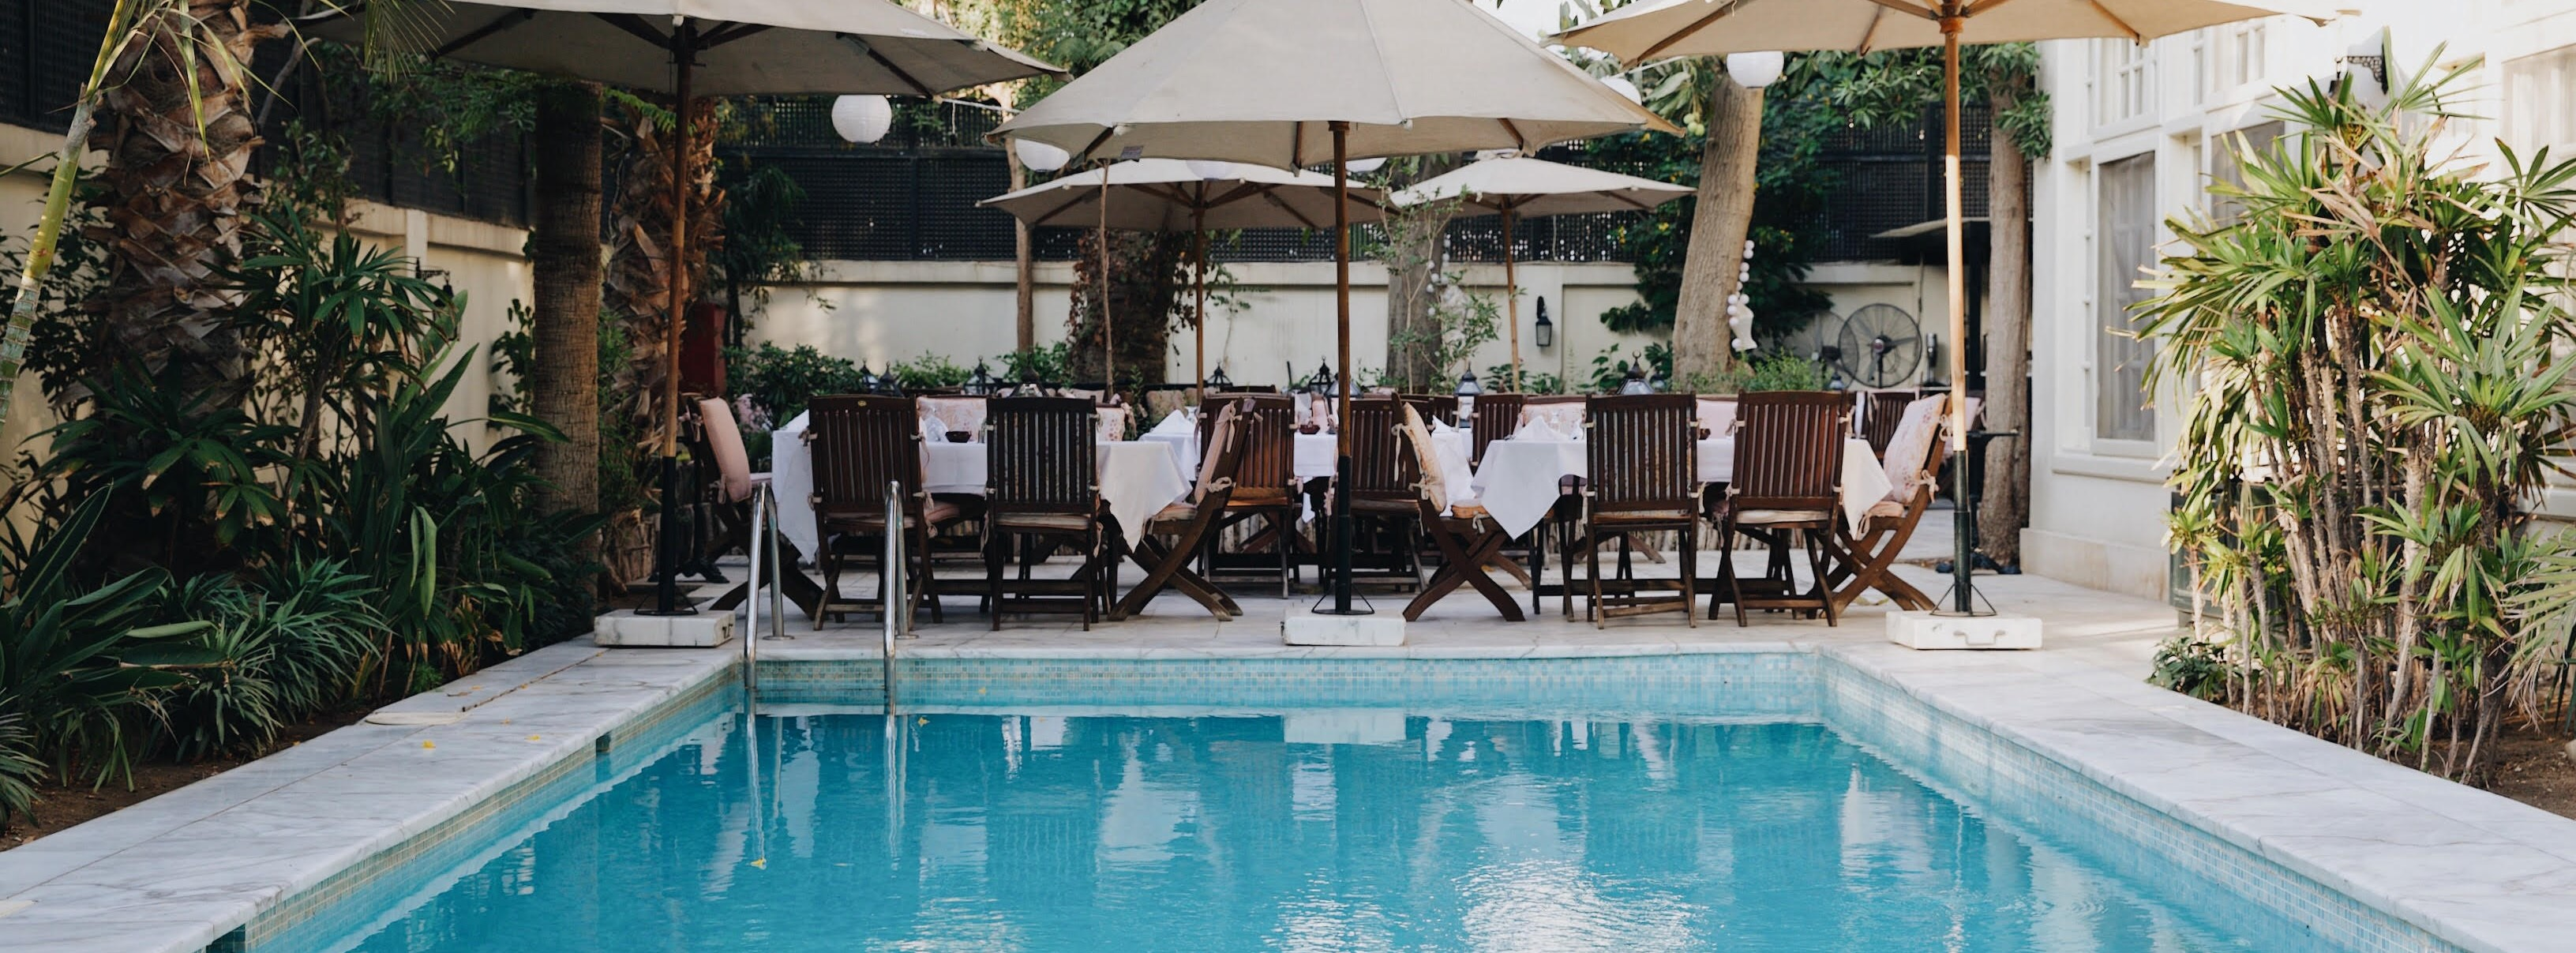 boutique-hotel-cairo-swimming-pool